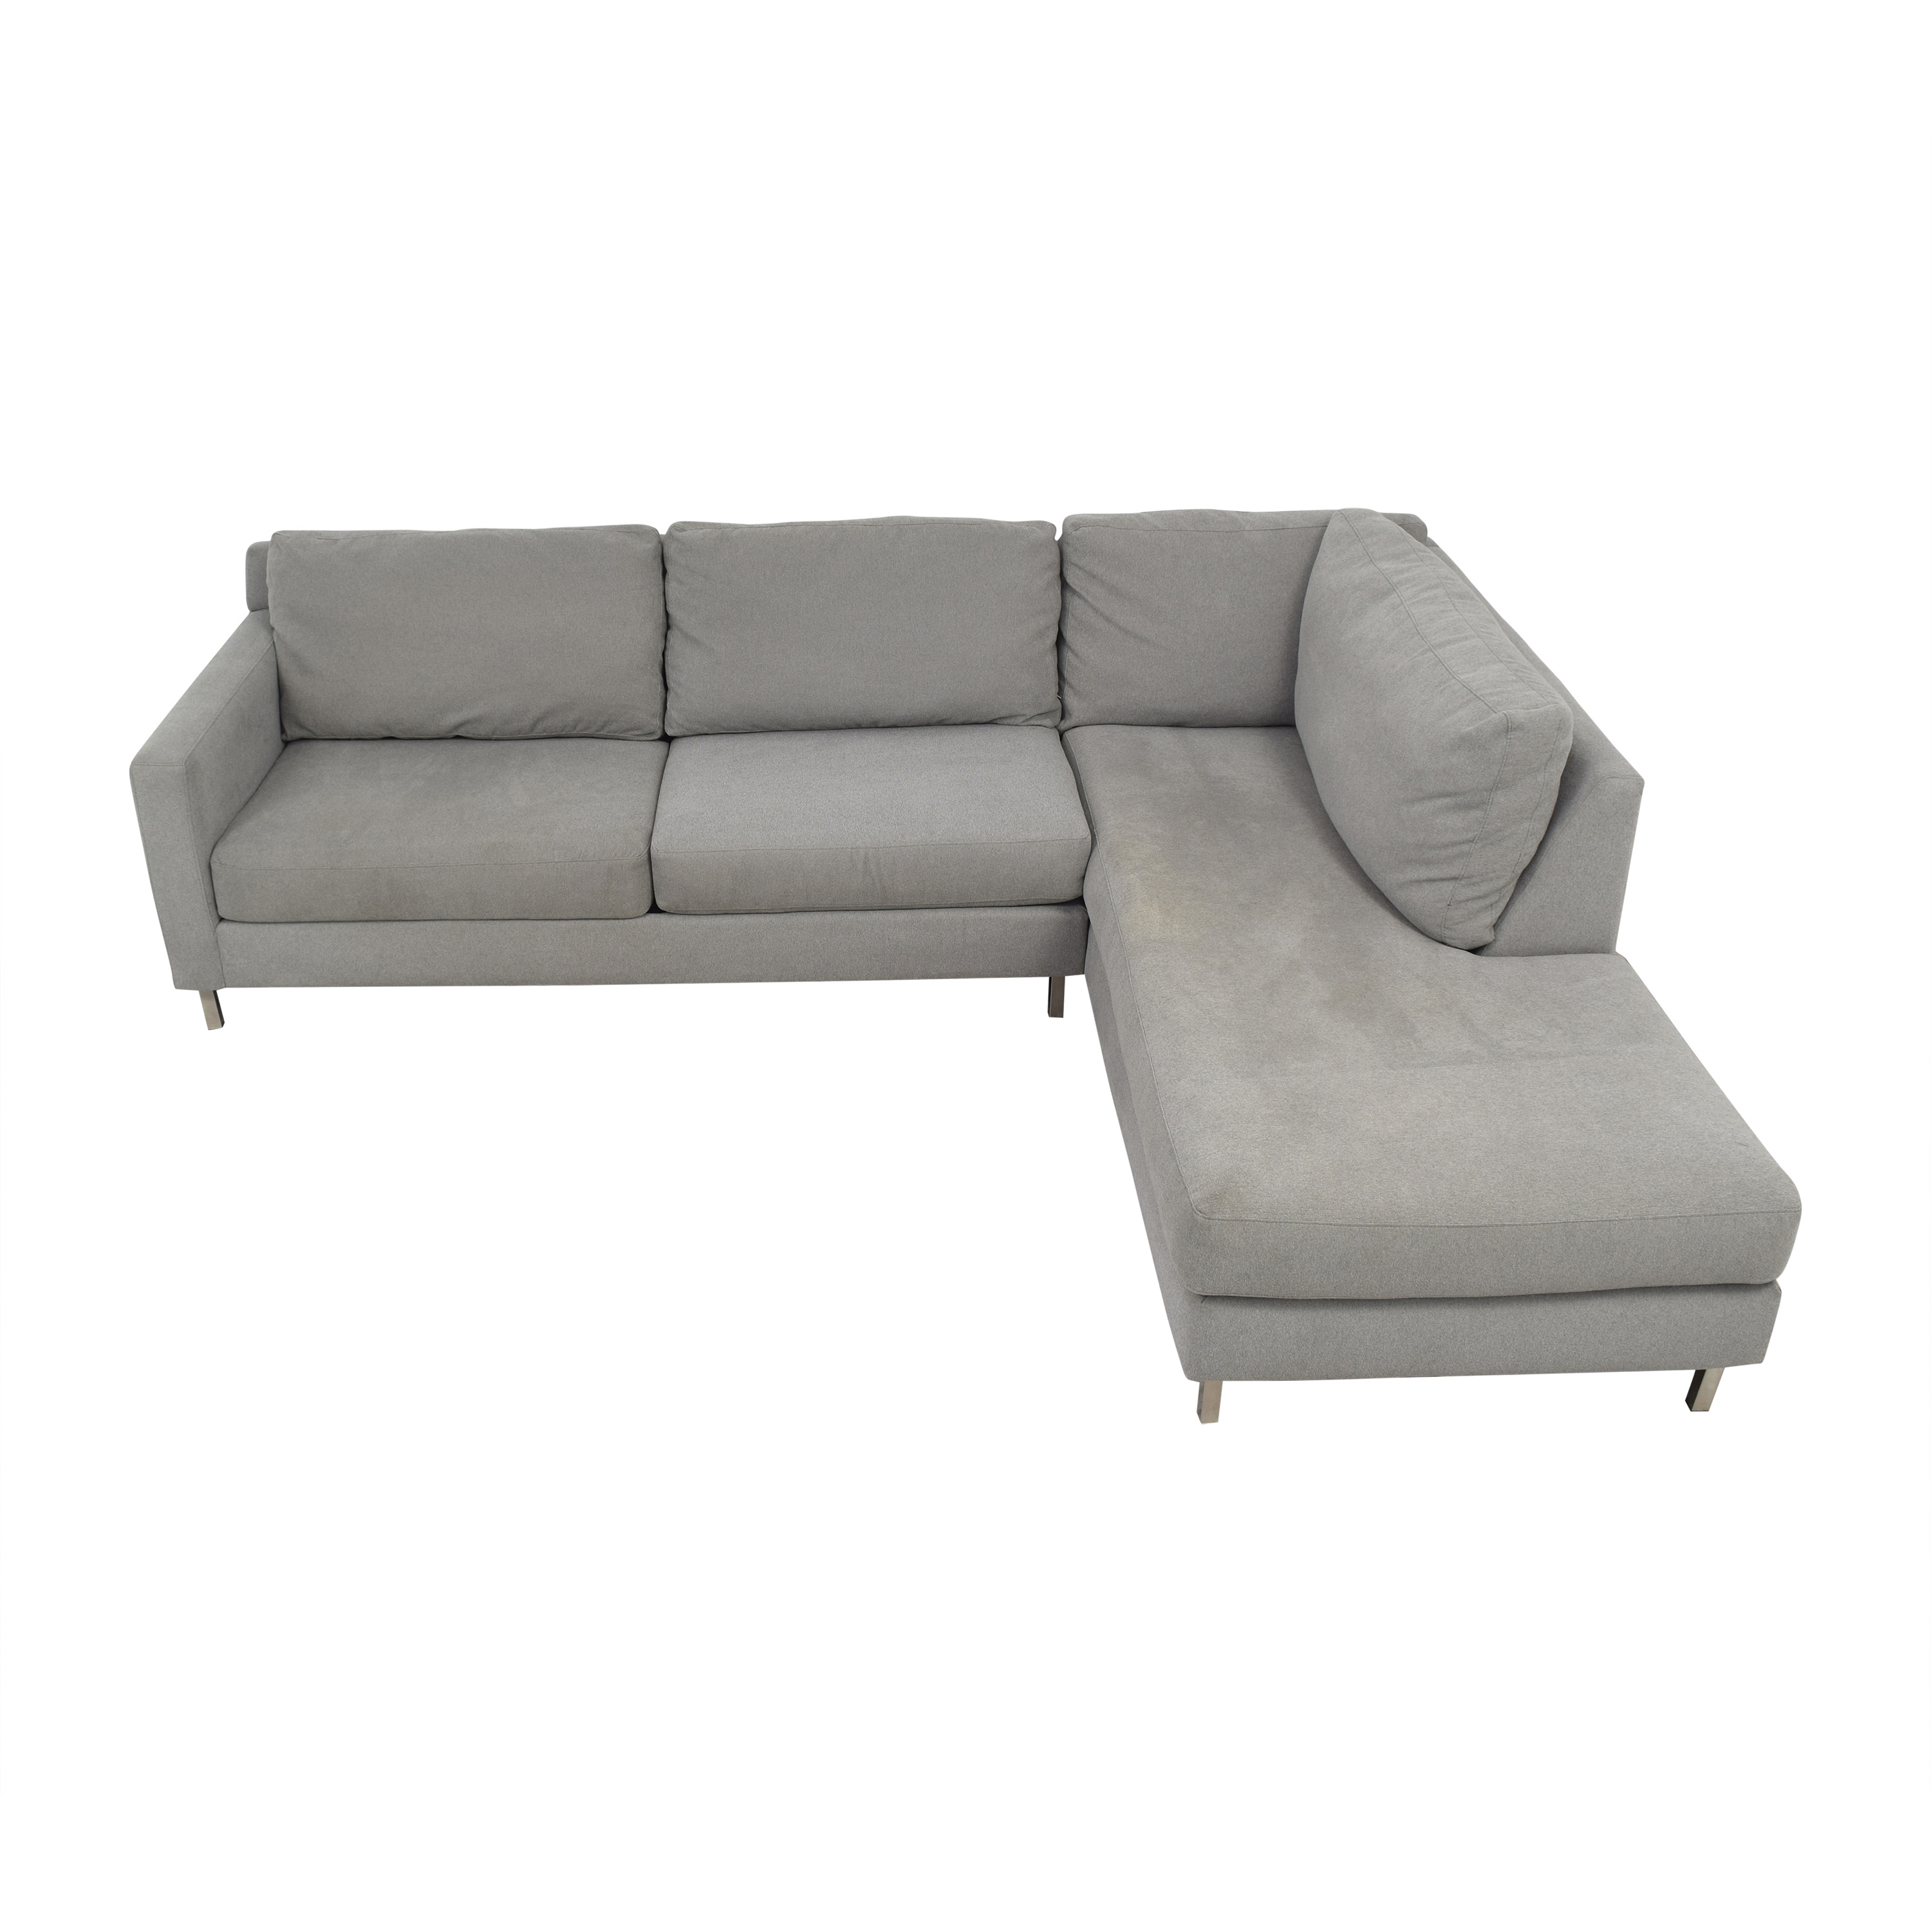 Raymour & Flanigan Raymour & Flanigan Modern Grey Sectional Couch nj